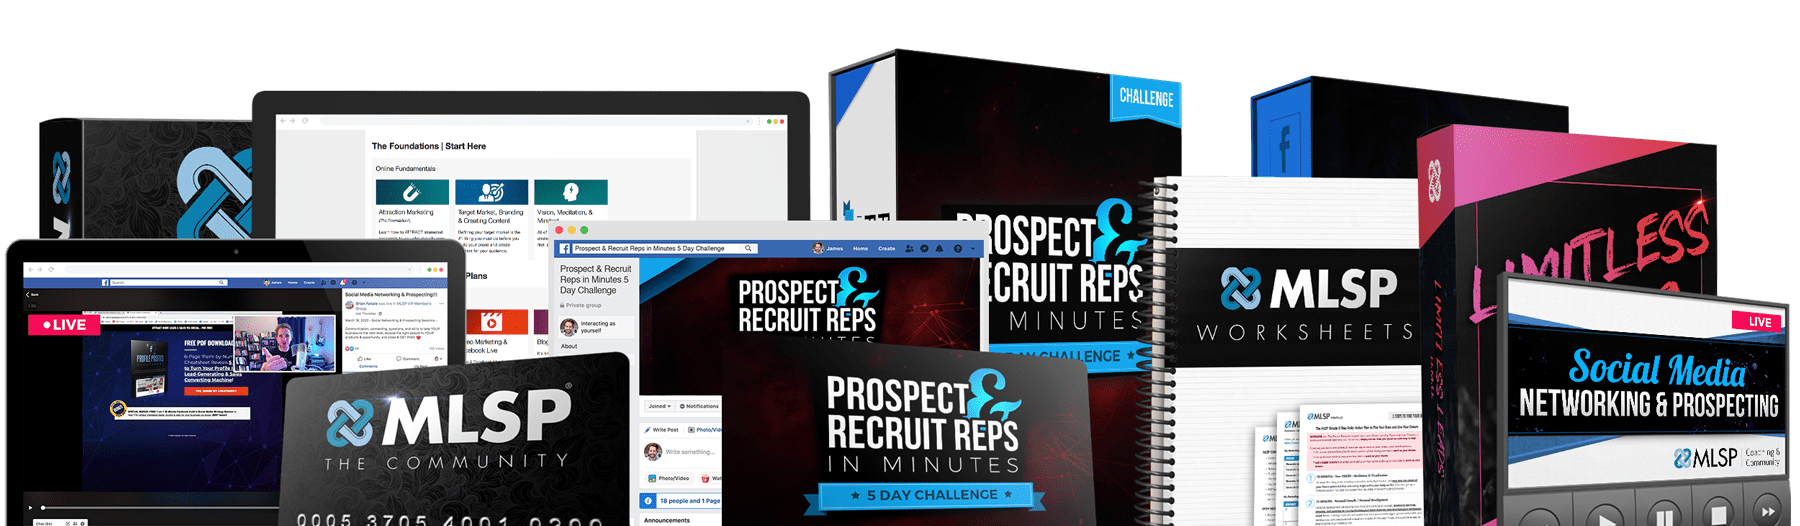 Prospect & Recruit Reps in Minutes